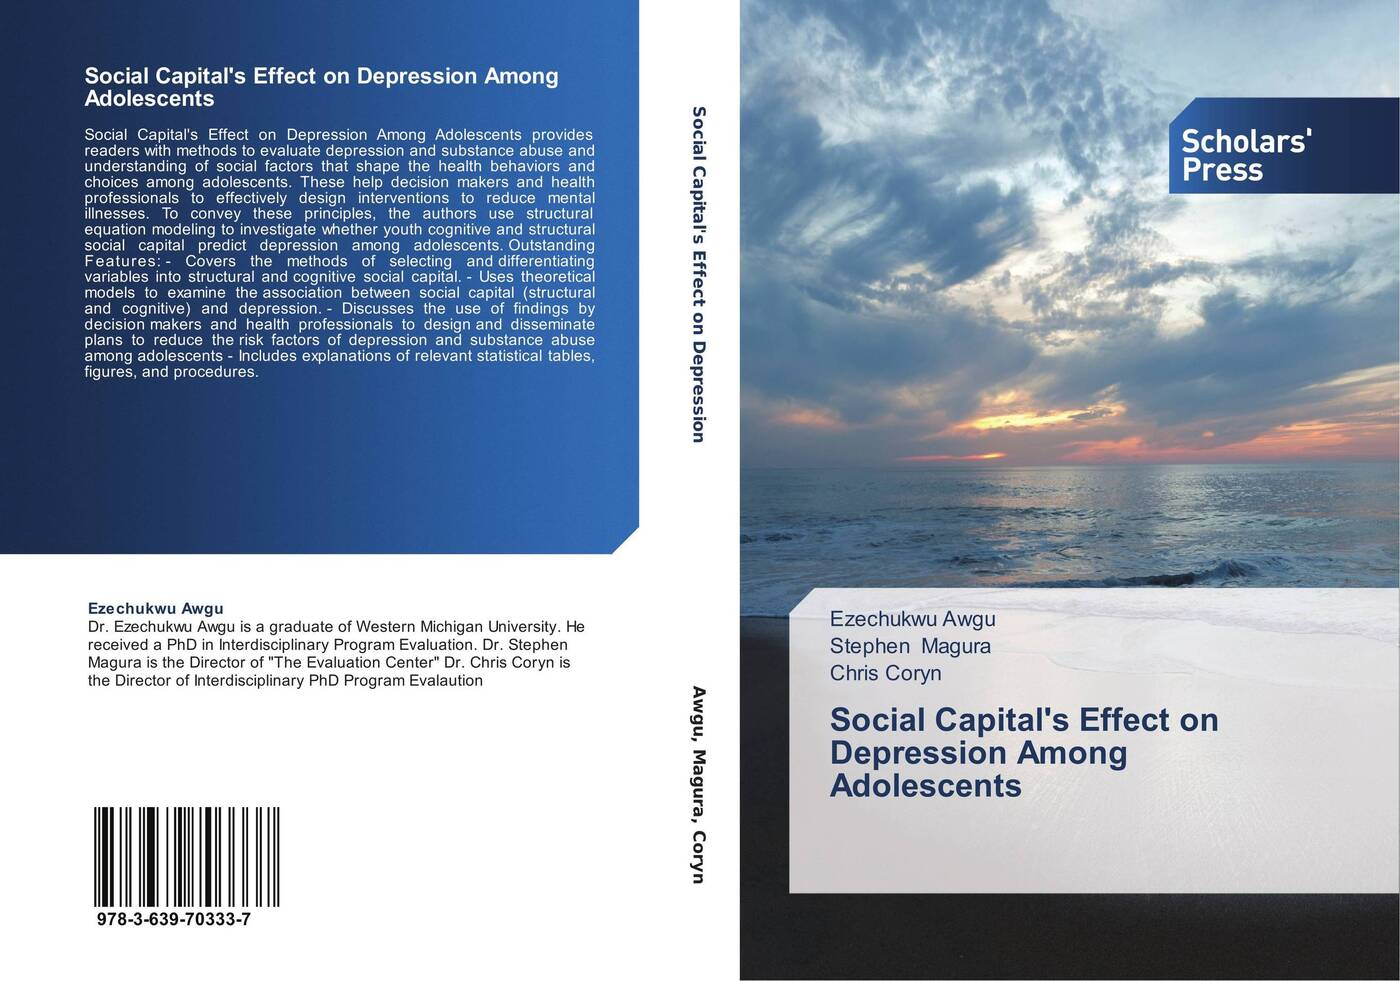 Ezechukwu Awgu,Stephen Magura and Chris Coryn Social Capital's Effect on Depression Among Adolescents все цены